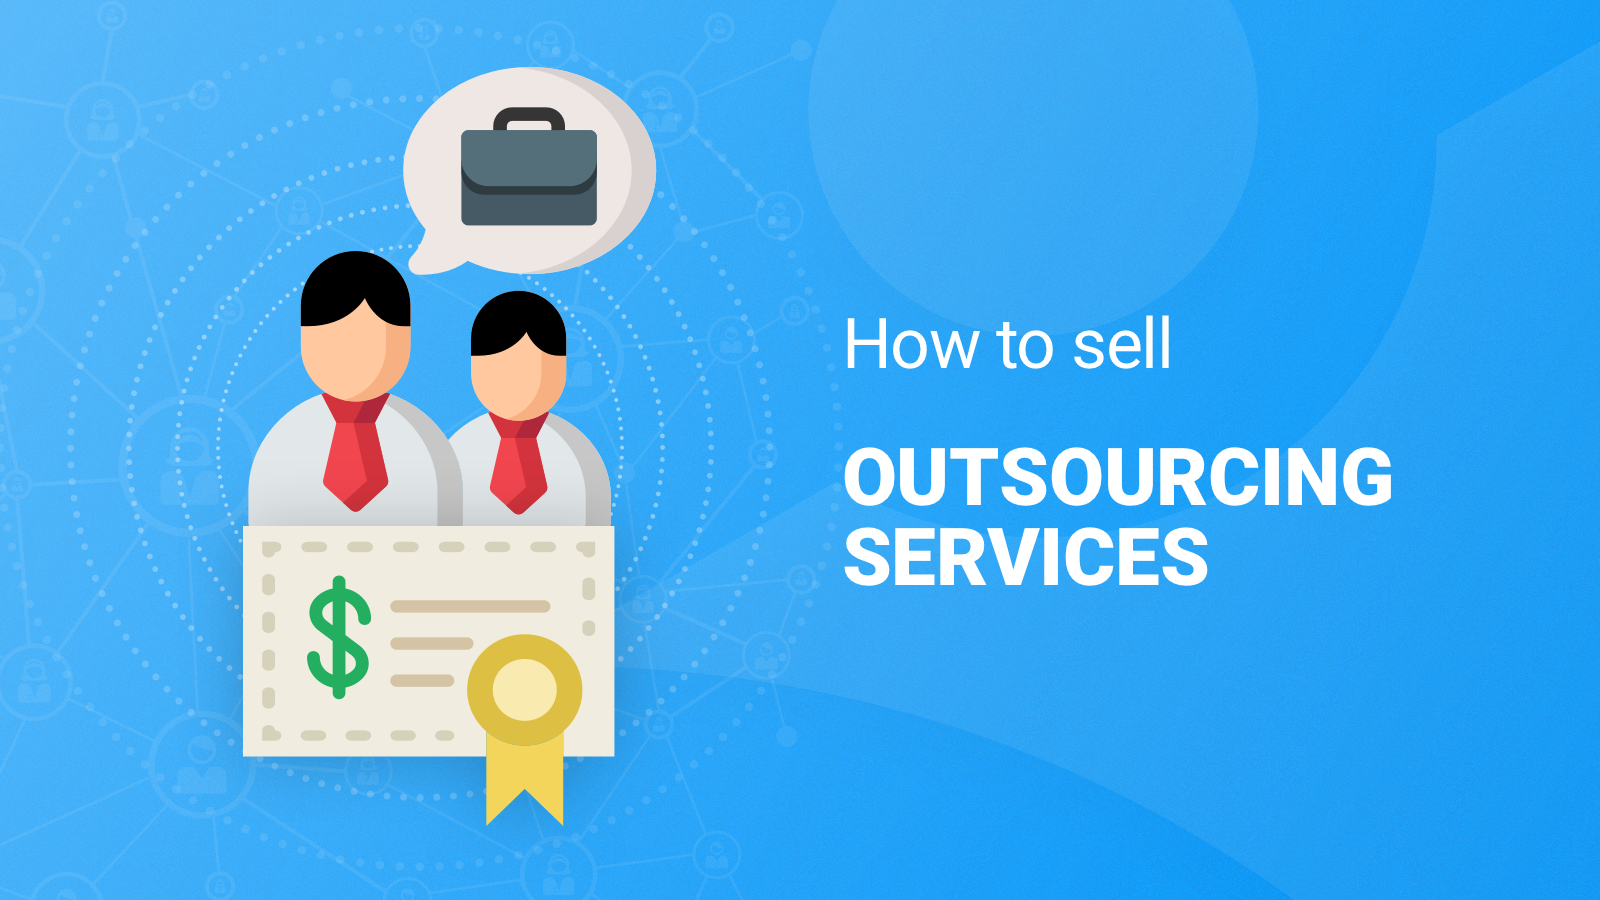 Forum on this topic: How to Sell IT Services, how-to-sell-it-services/